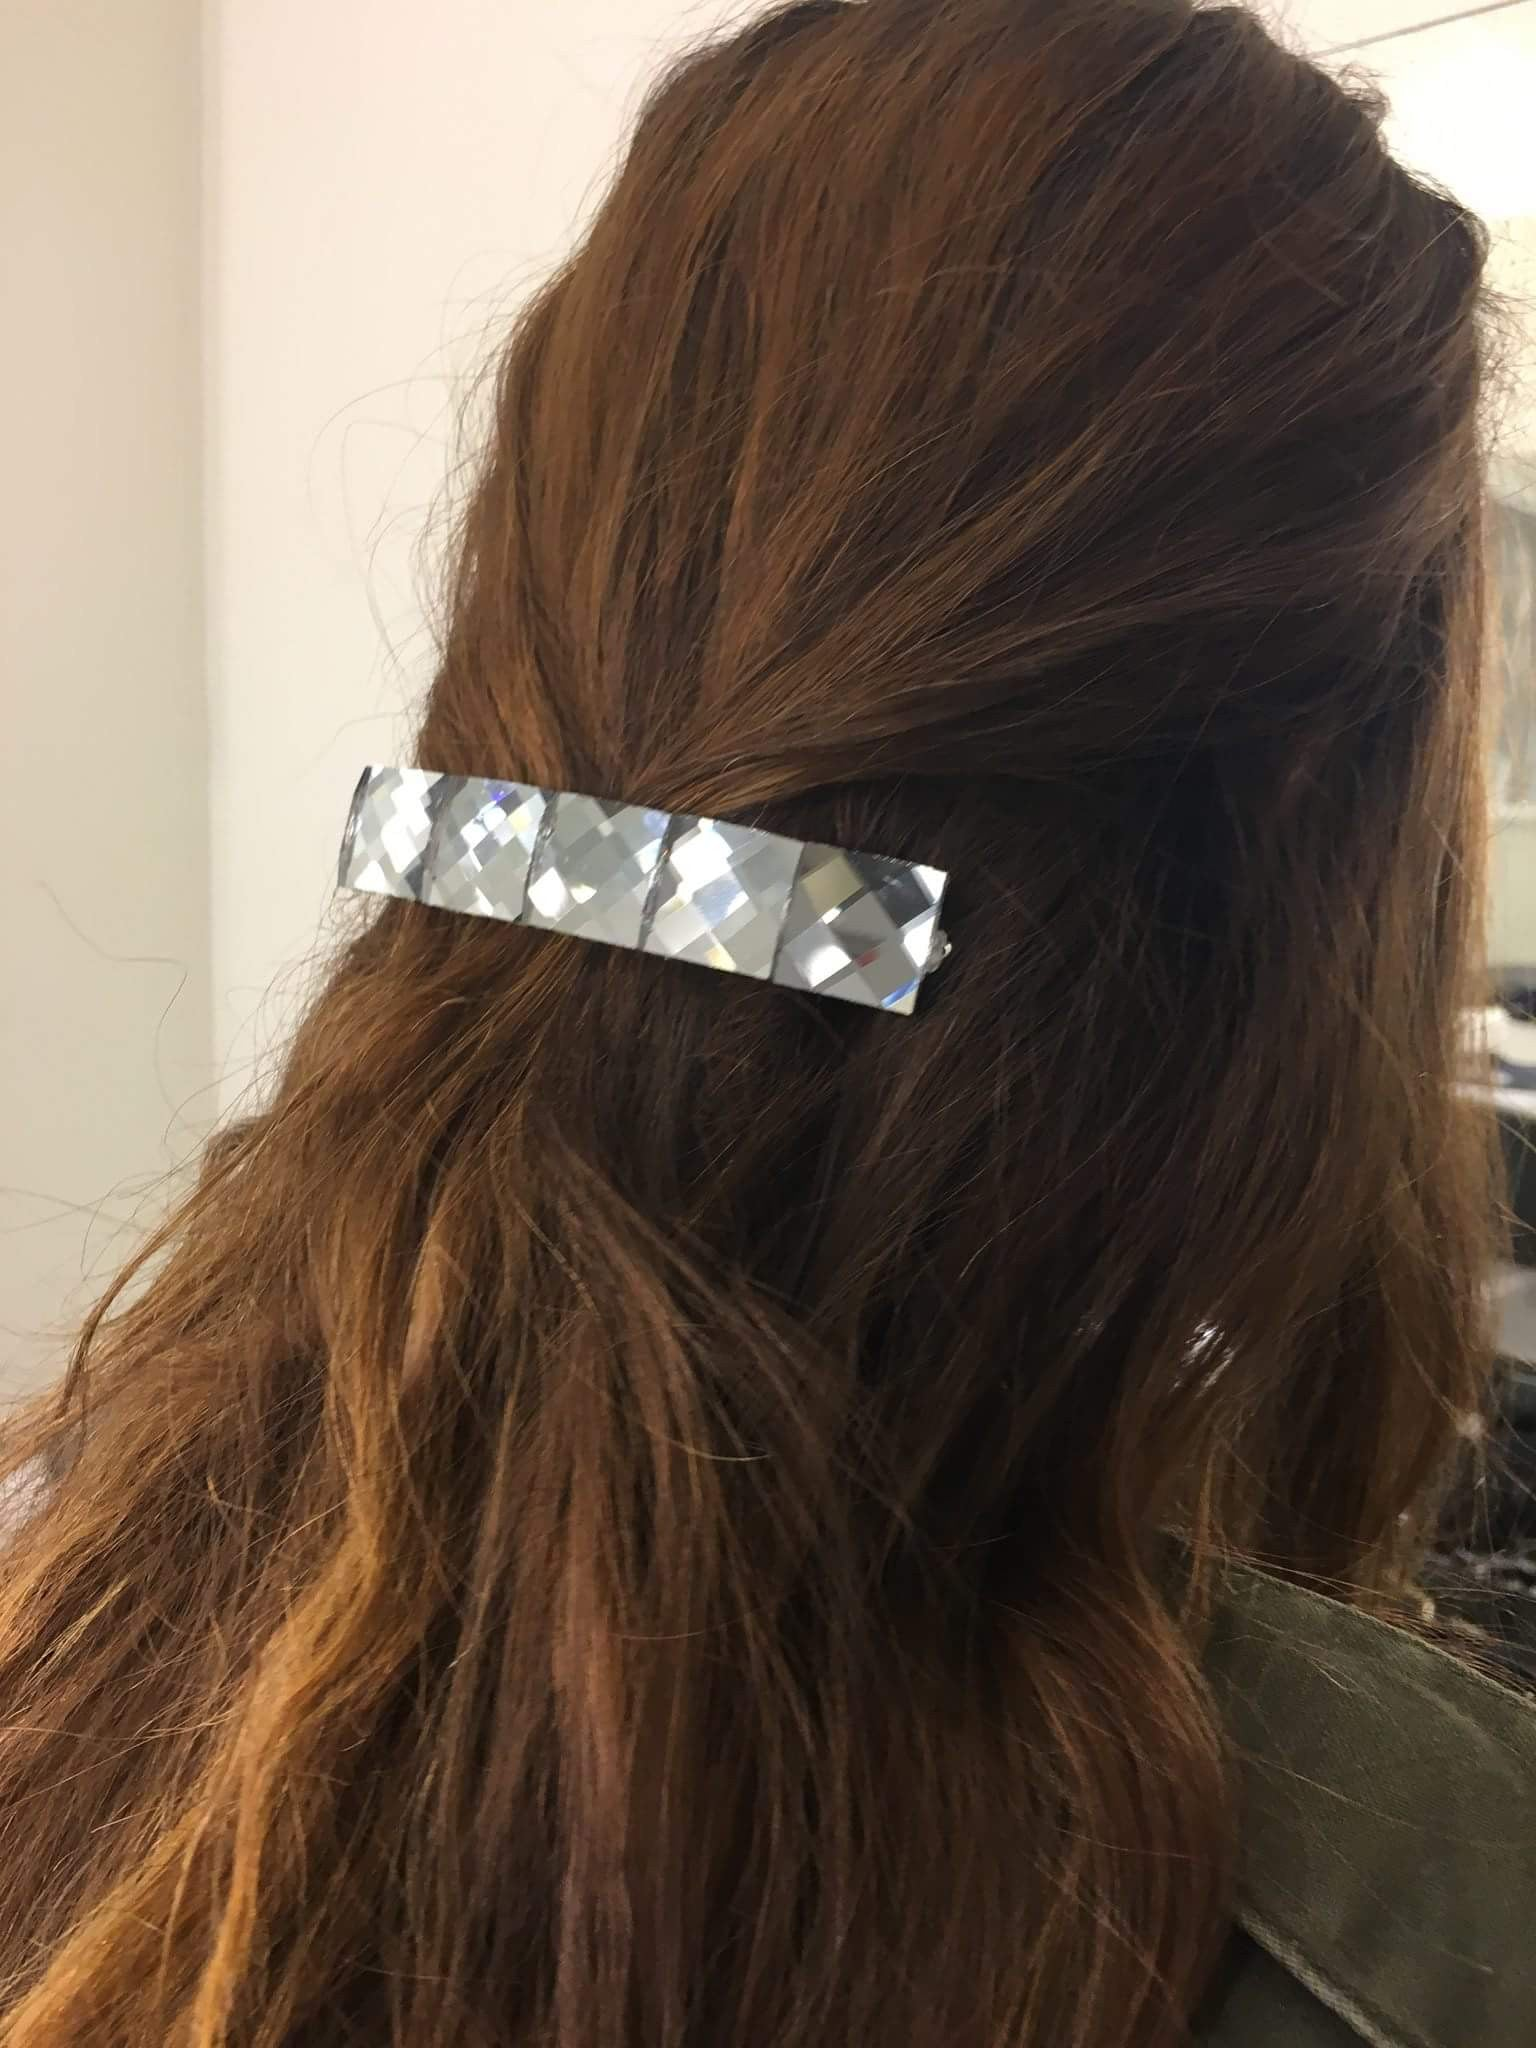 Large Prism Mirror Barrette